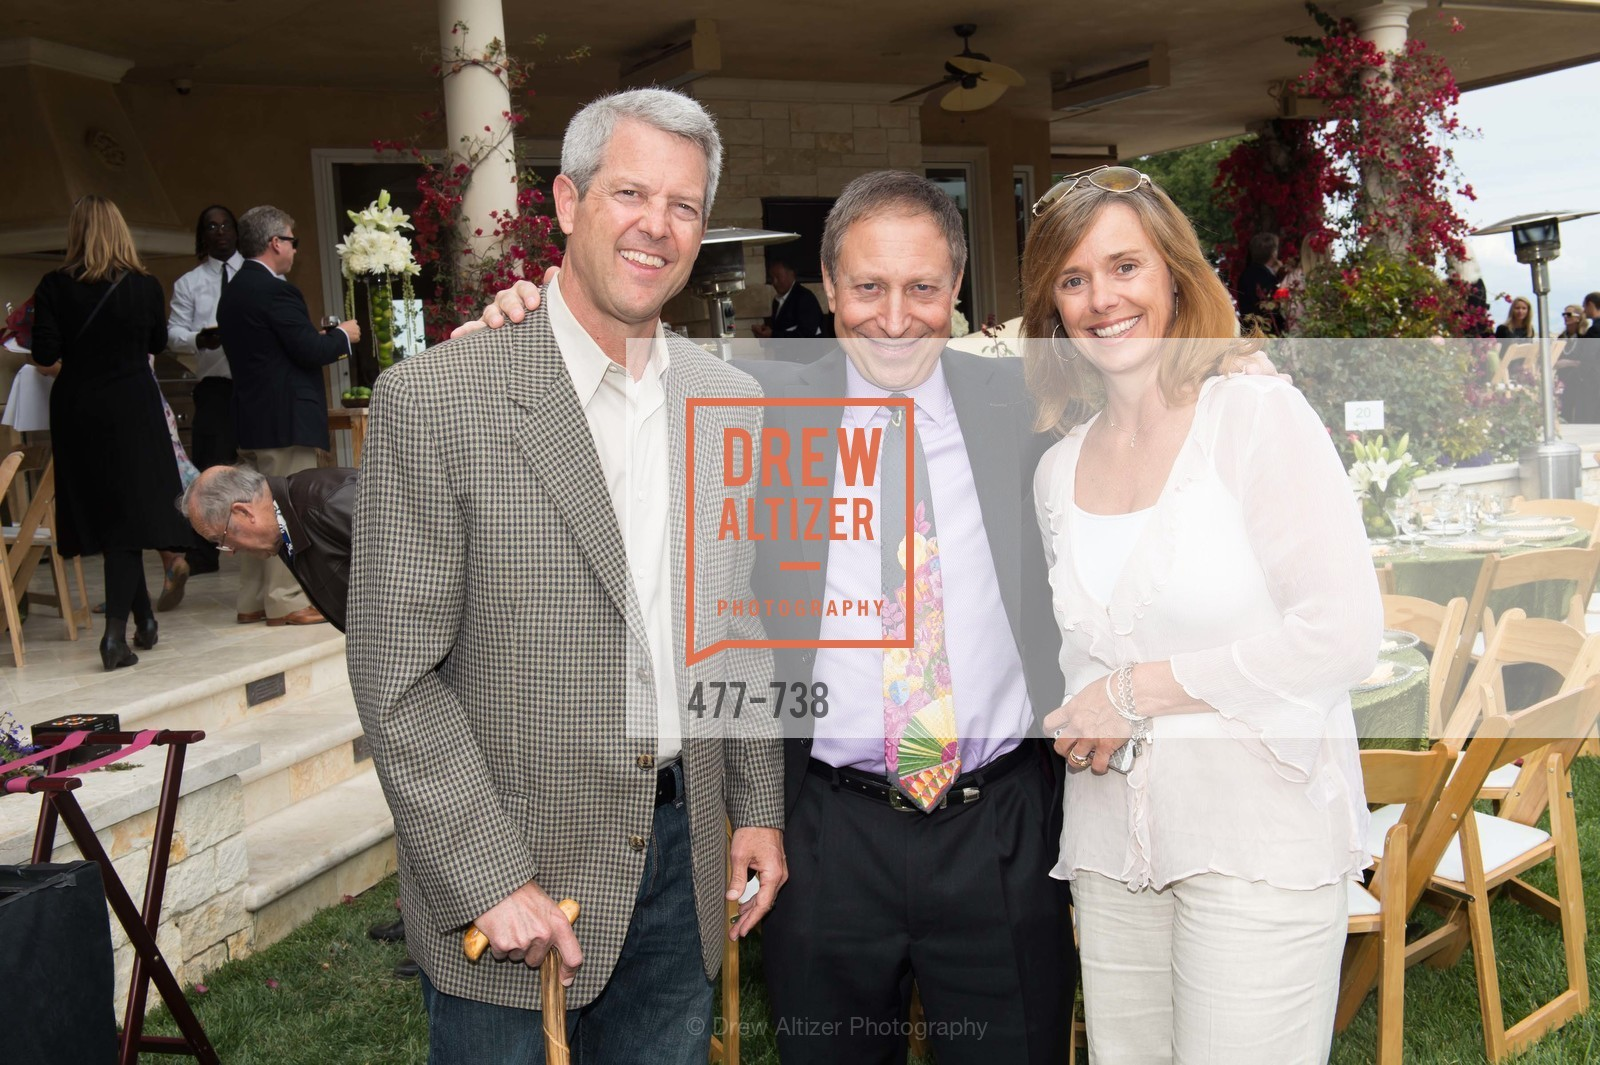 Scott Athearn, Richard Horowitz, Camille Athearn, LymeAid 2015, US, May 17th, 2015,Drew Altizer, Drew Altizer Photography, full-service agency, private events, San Francisco photographer, photographer california